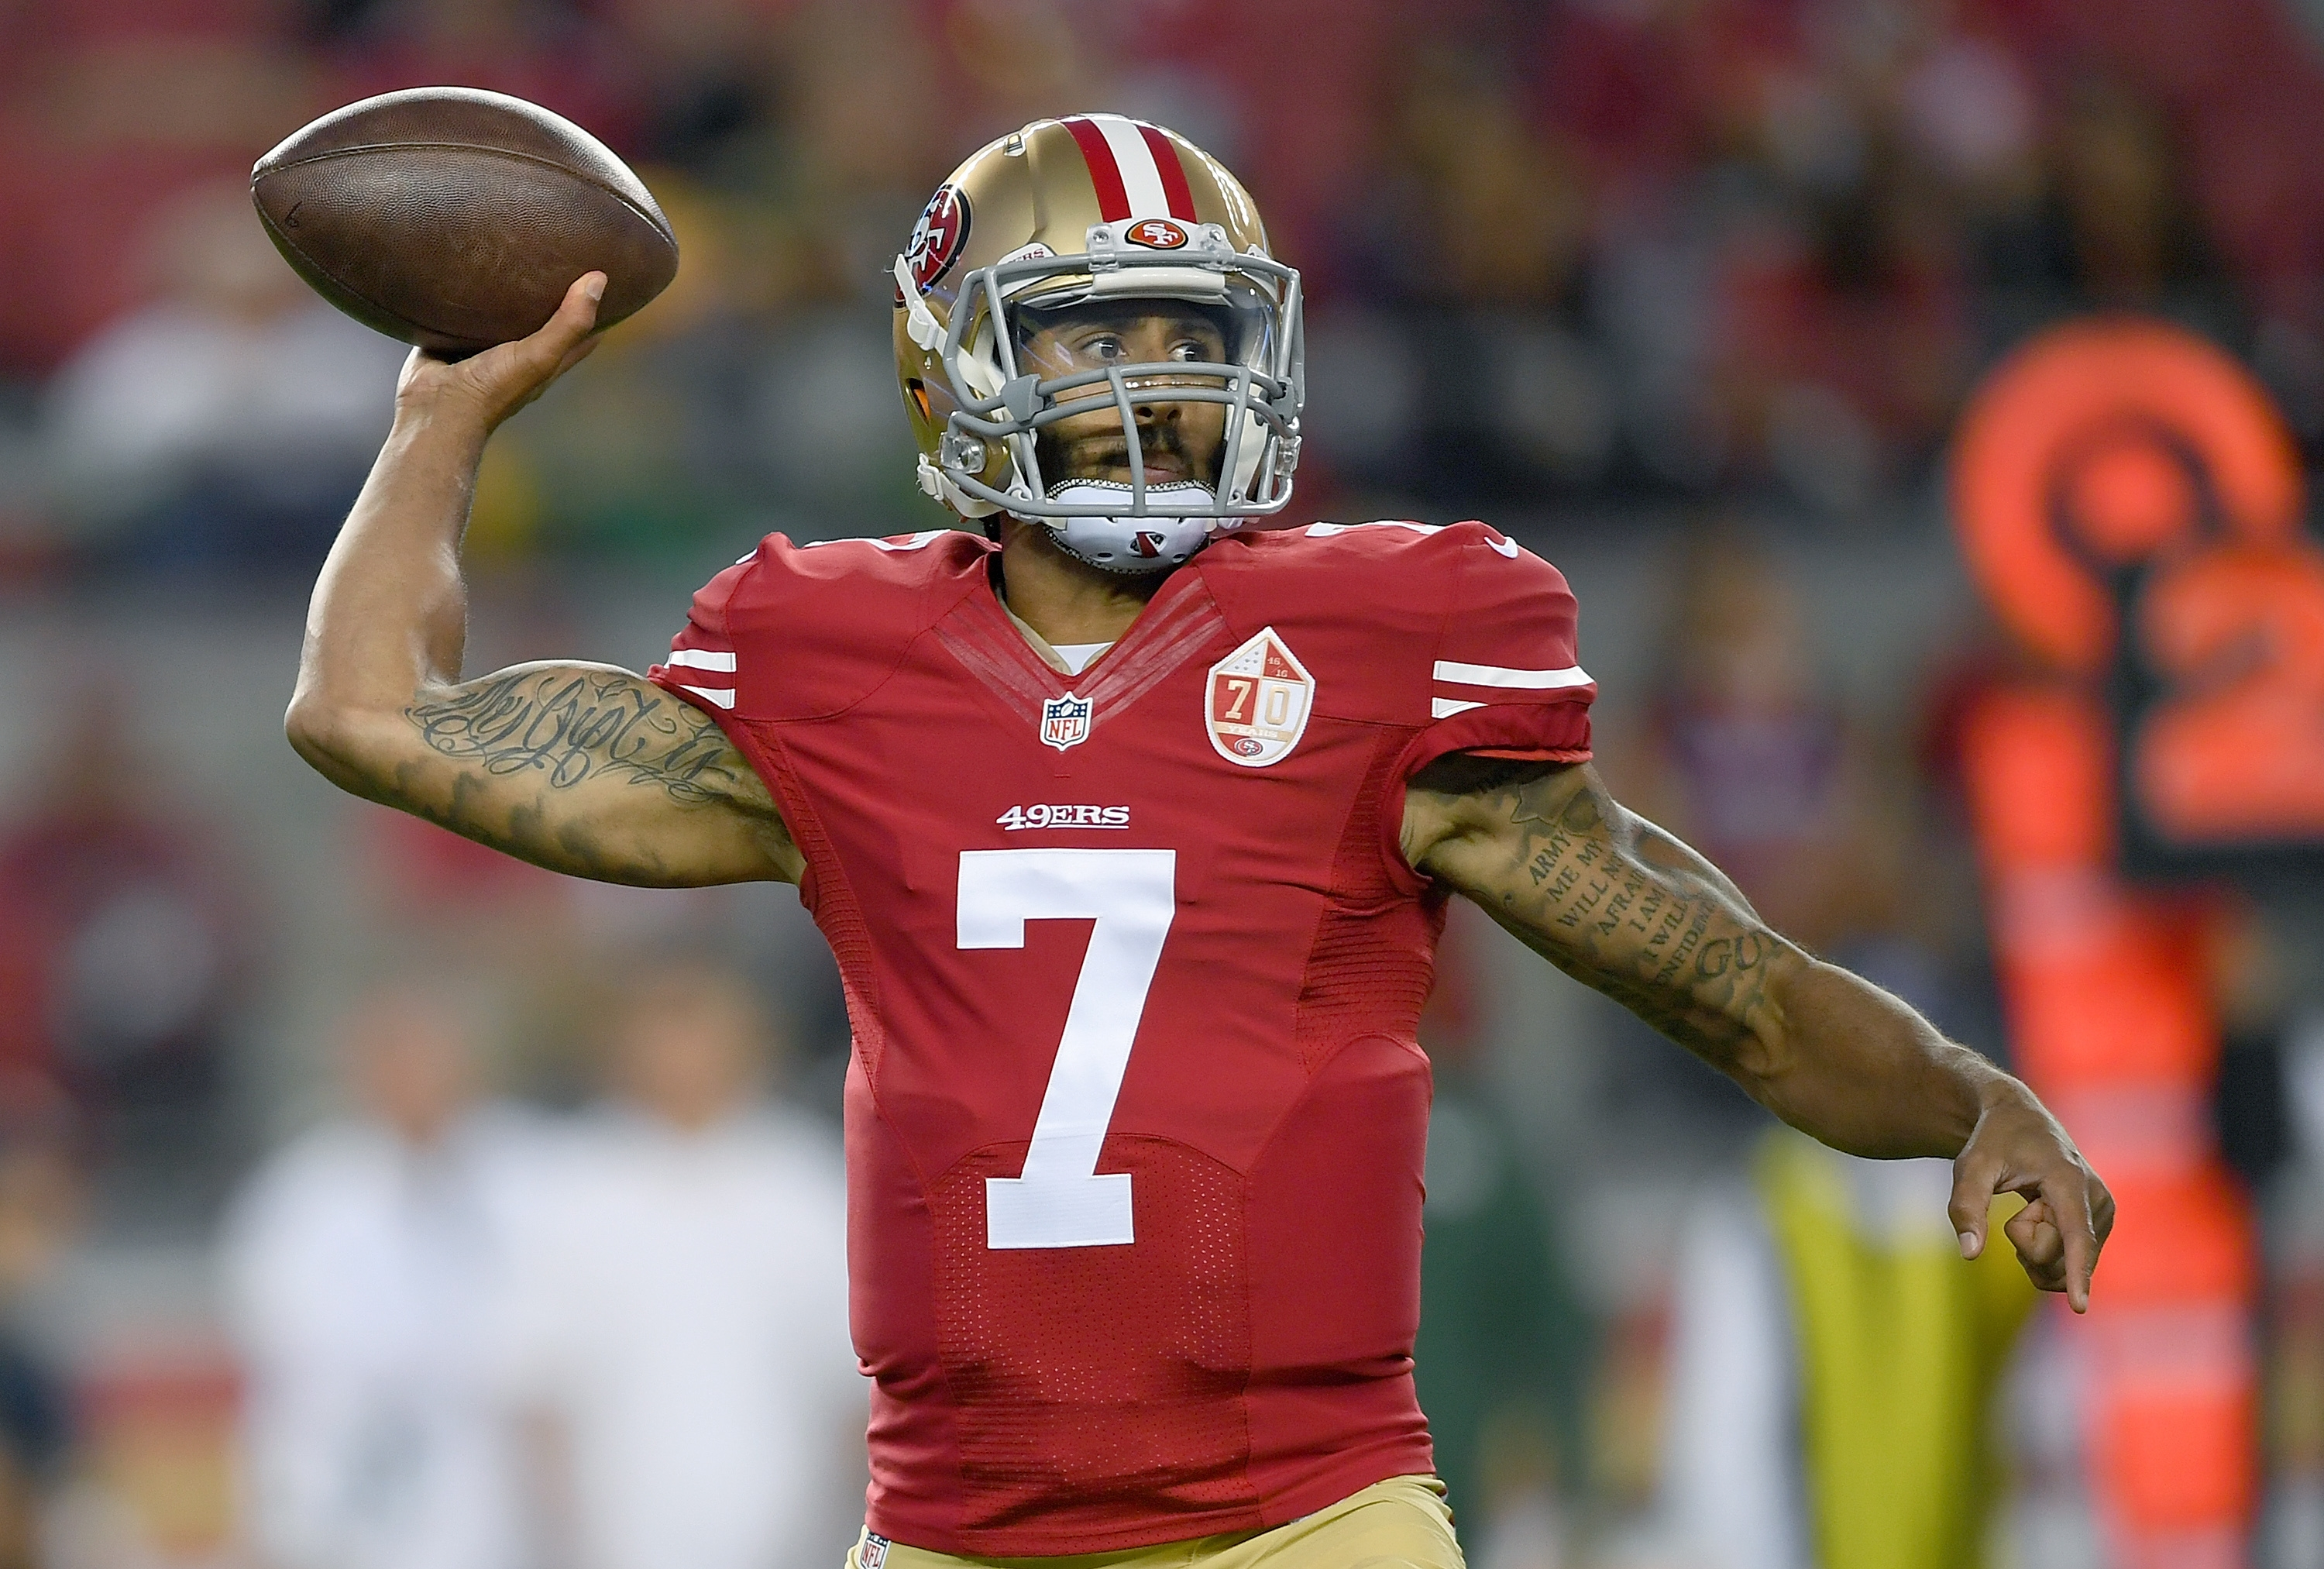 Colin Kaepernick has taken a controversial stance to not stand for the national anthem.